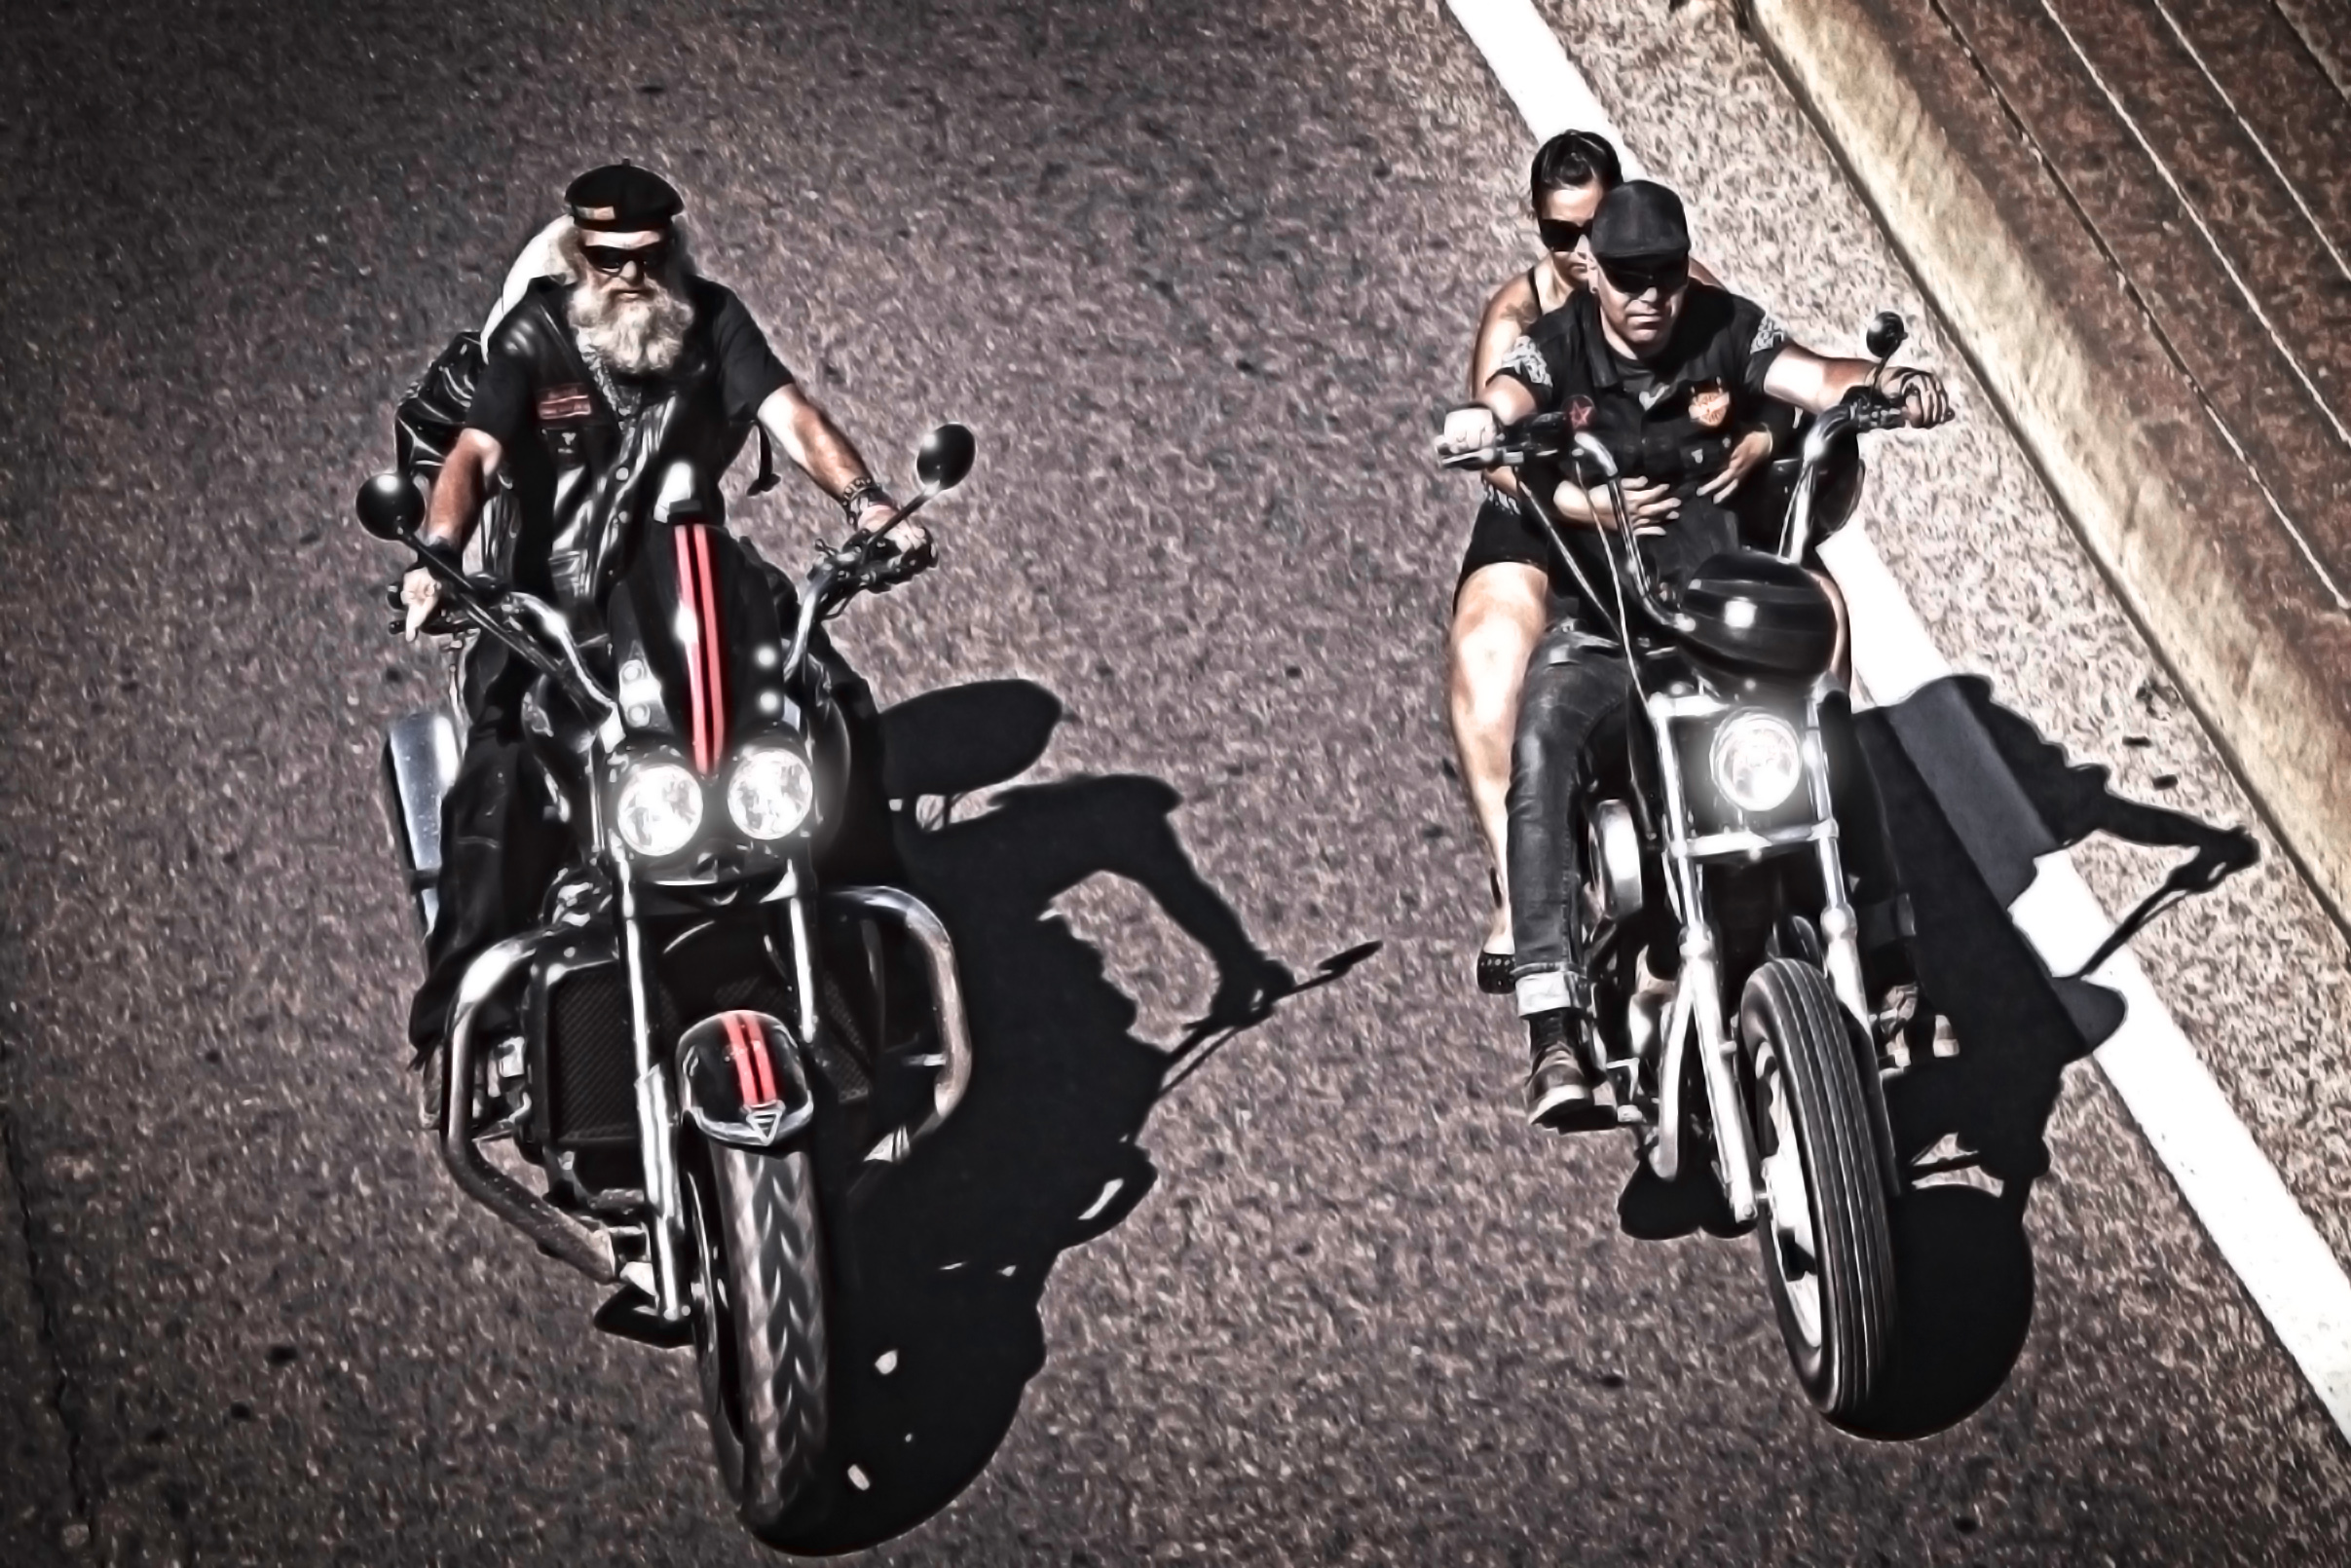 Two generations of bikers riding chopper, Action, People, Rider, Ride, HQ Photo